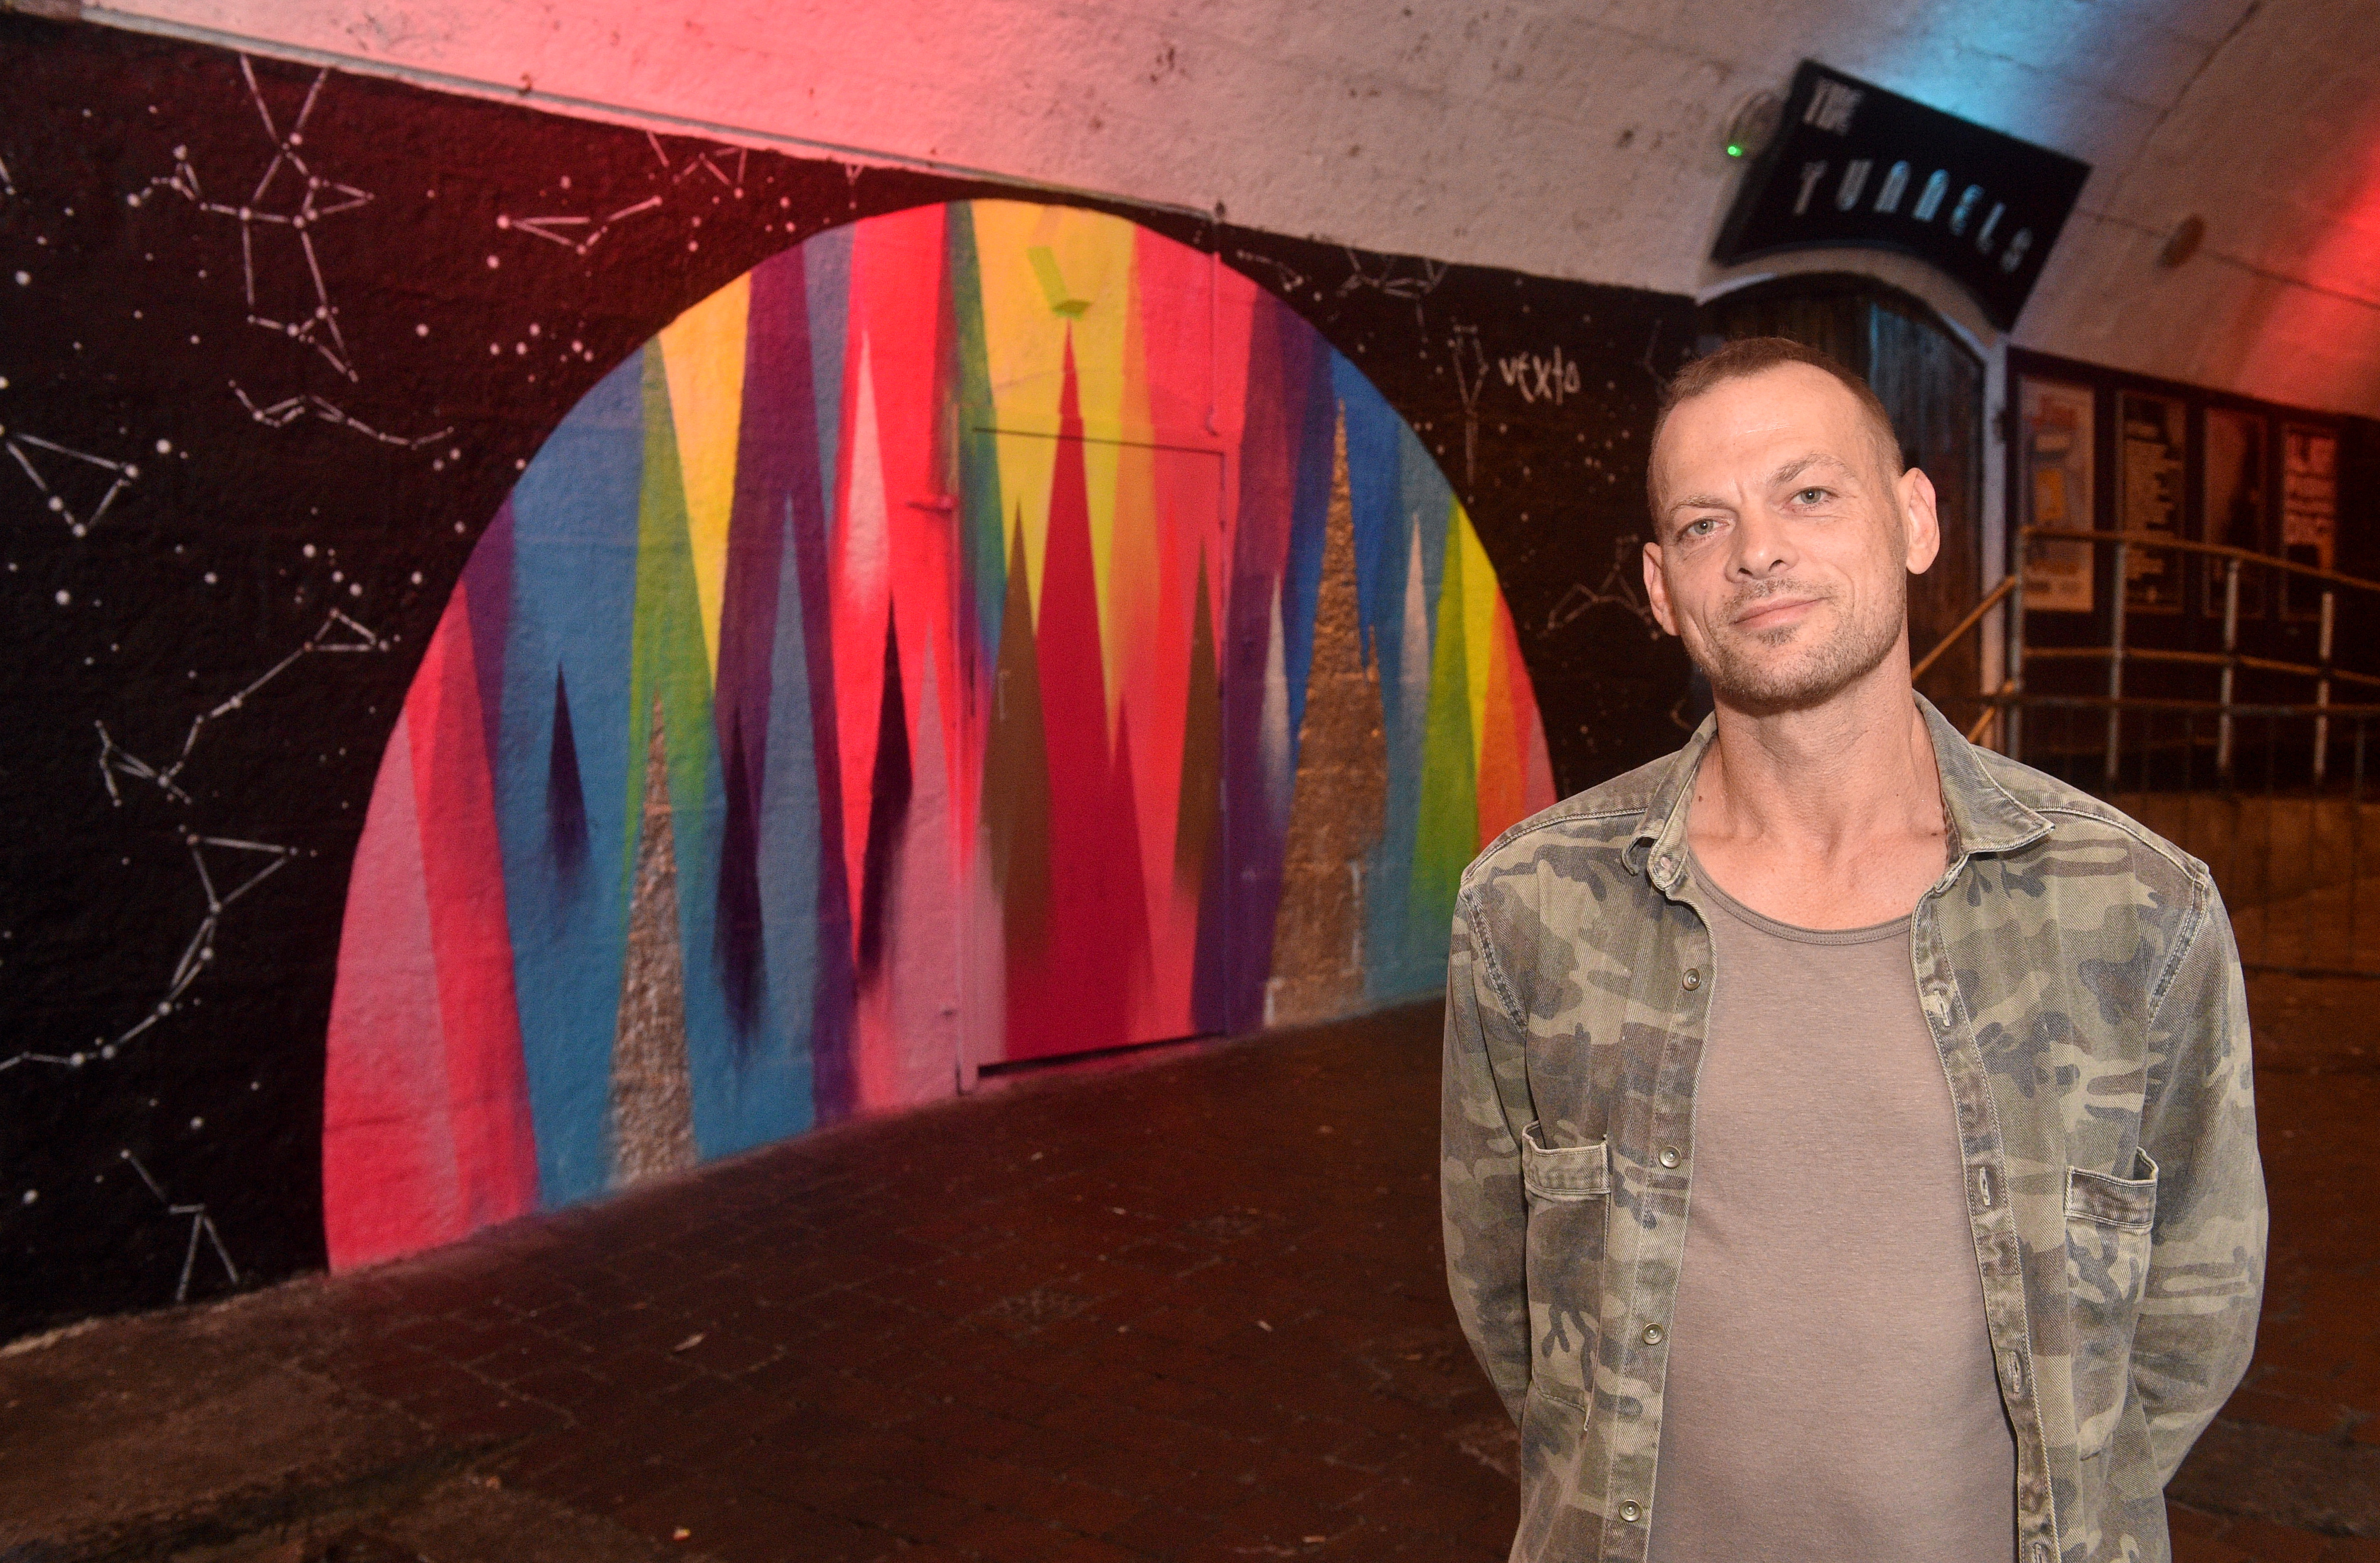 Tunnels manager Steve Morris at The Tunnels where artist Vexta has painted a mural.